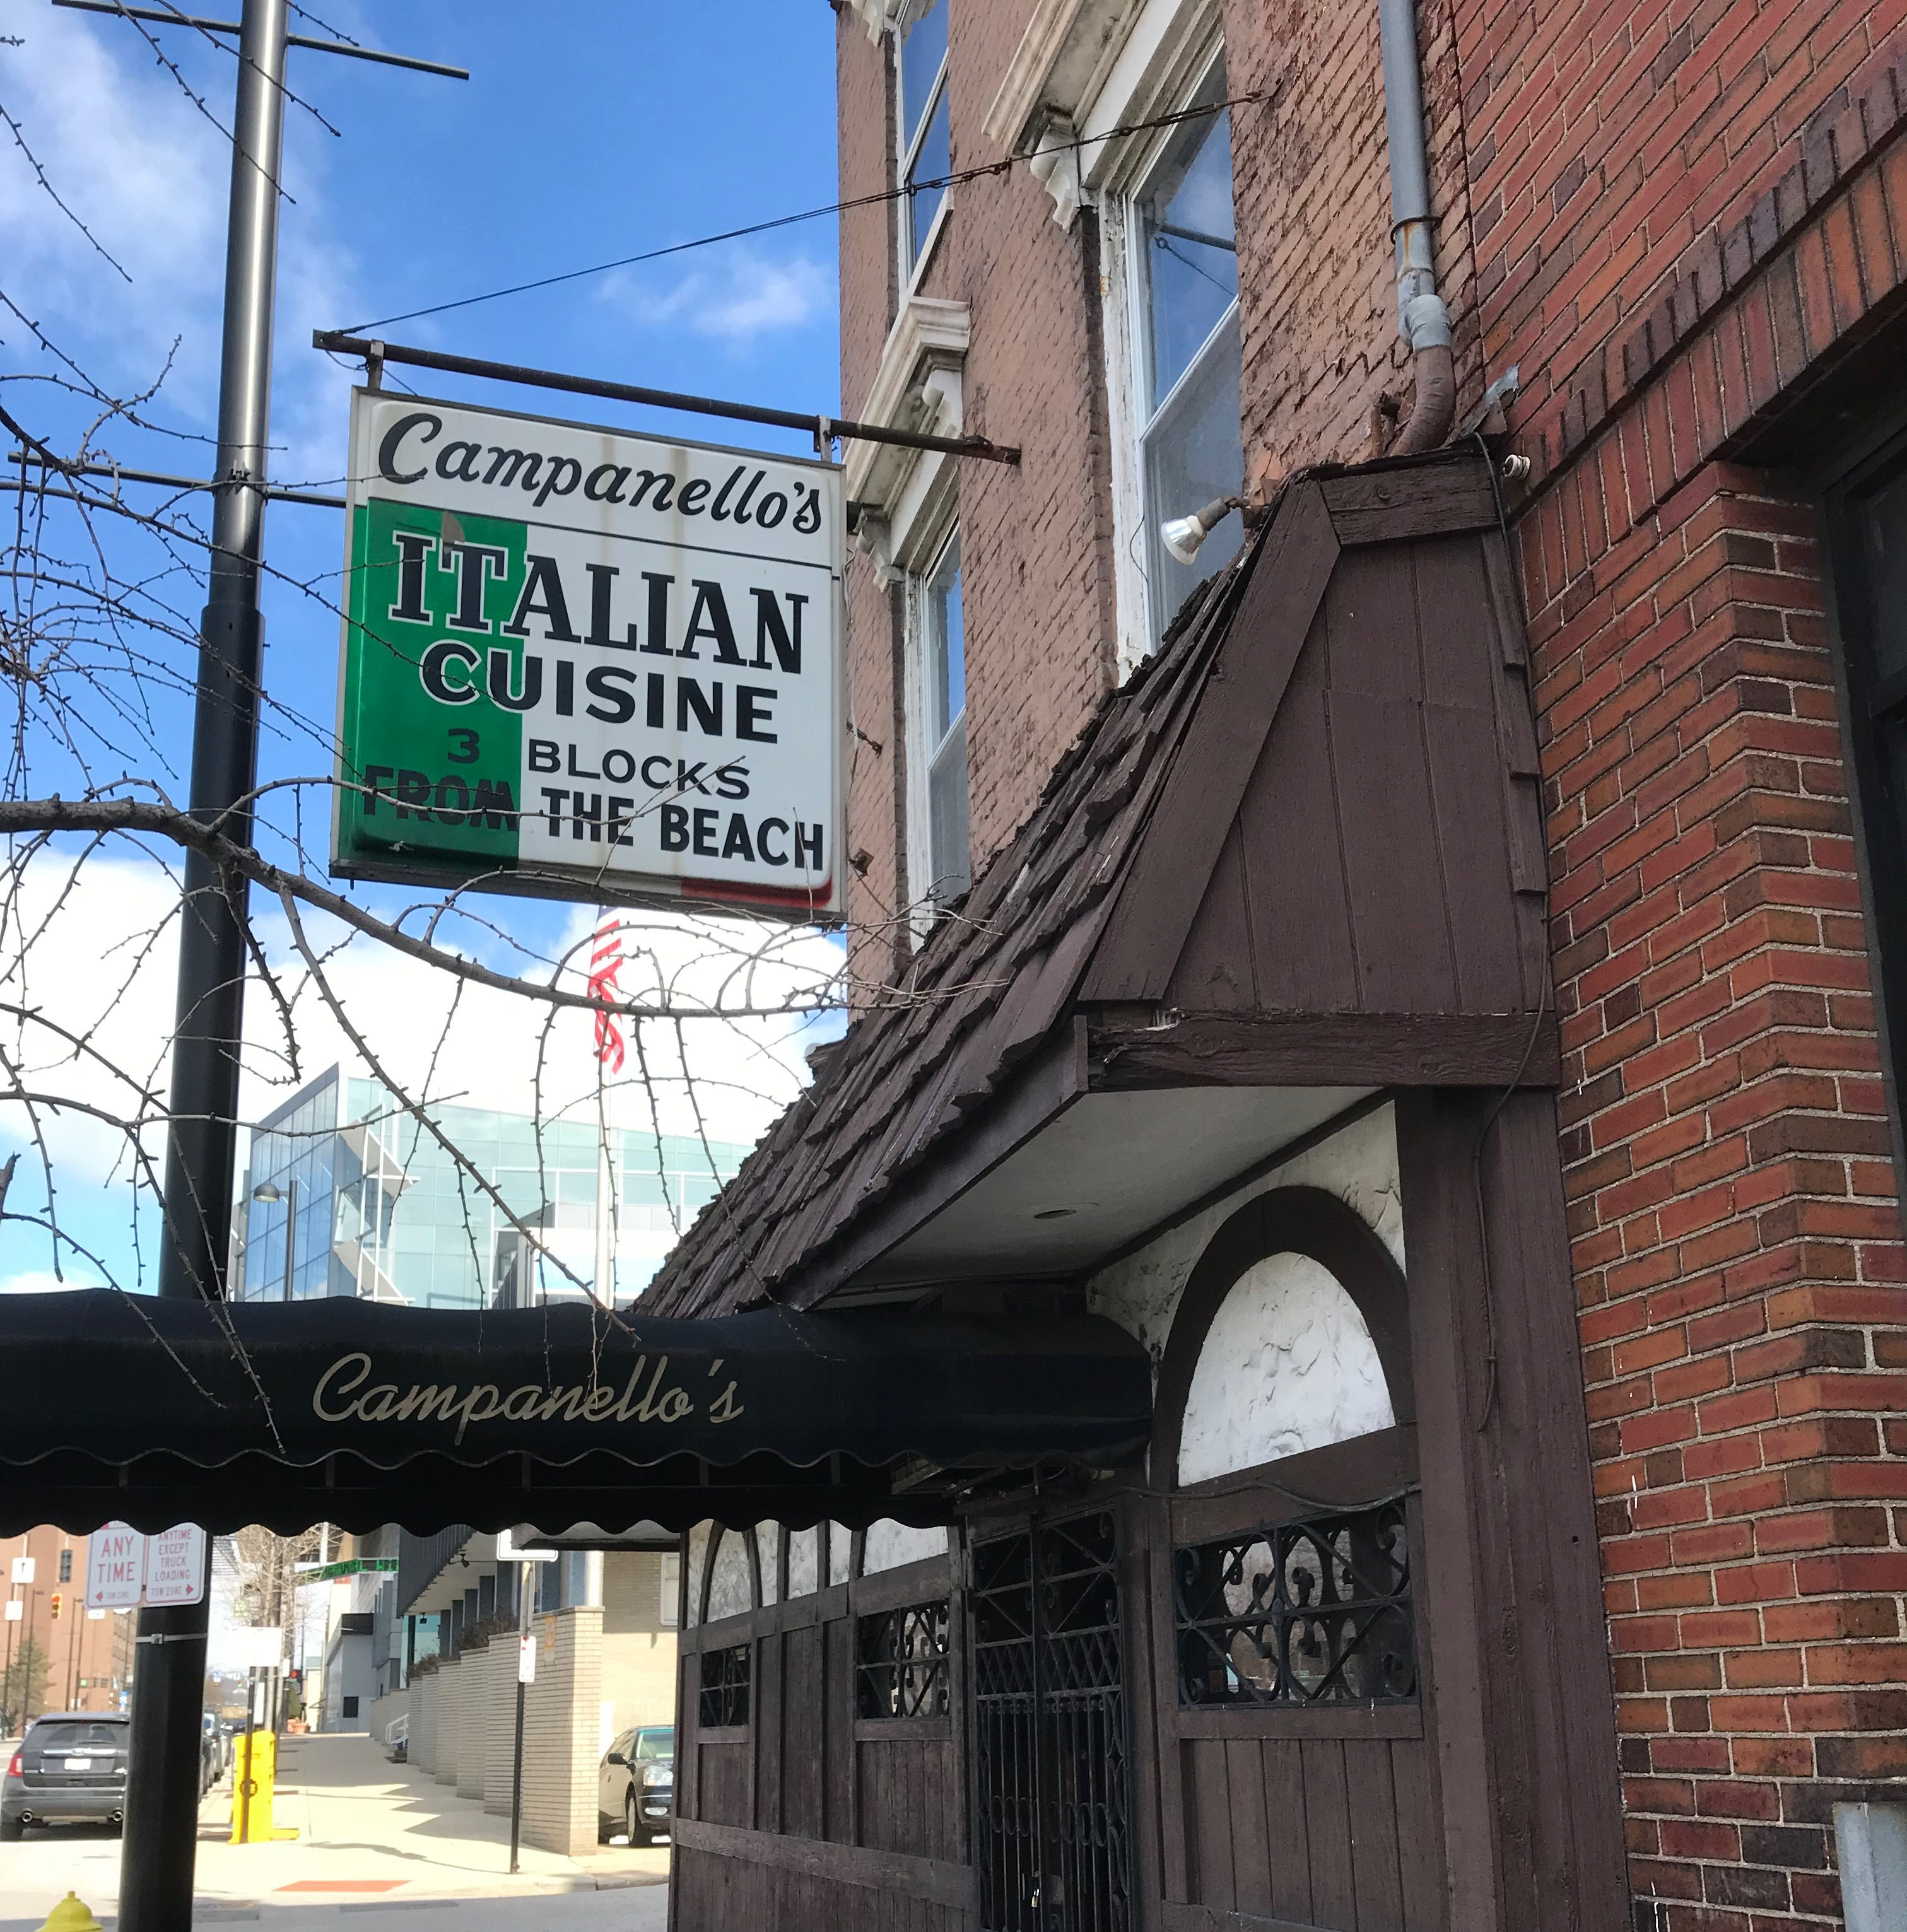 Campanello's Italian Restaurant has quietly closed Downtown